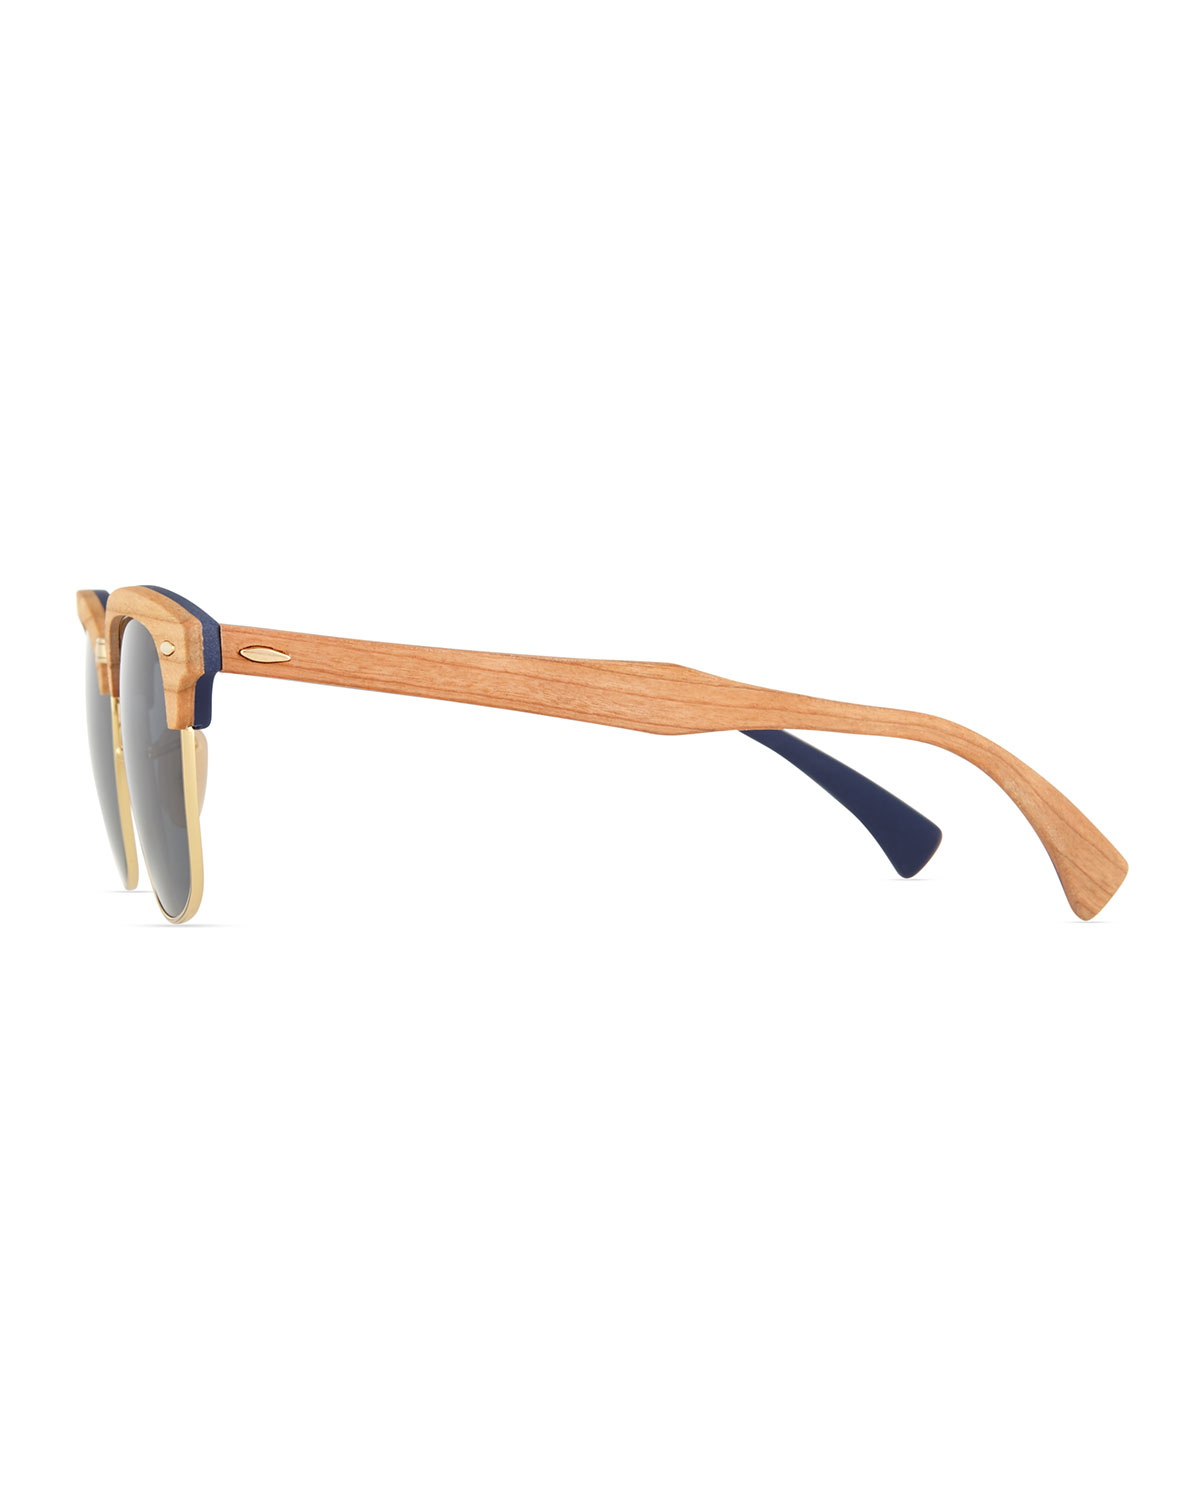 Lyst - Ray-Ban Clubmaster Wood Sunglasses in Blue for Men